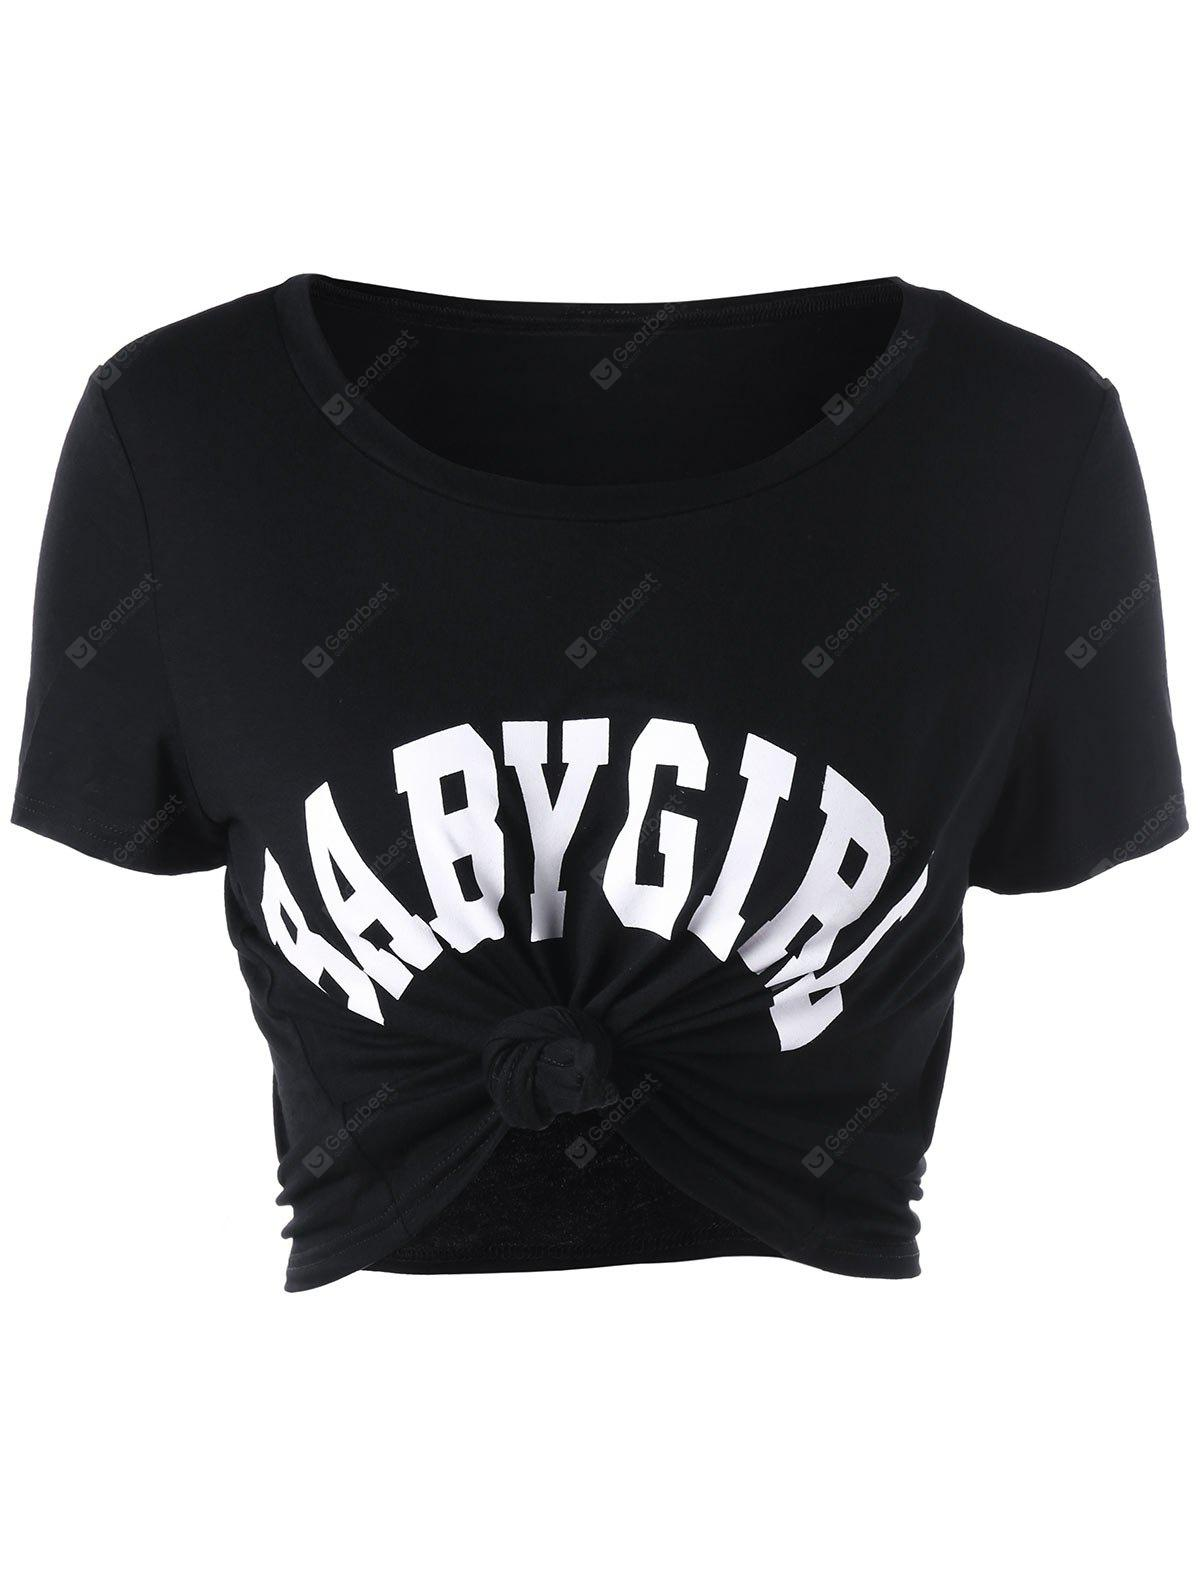 BLACK S Baby Girl Cropped T-shirt